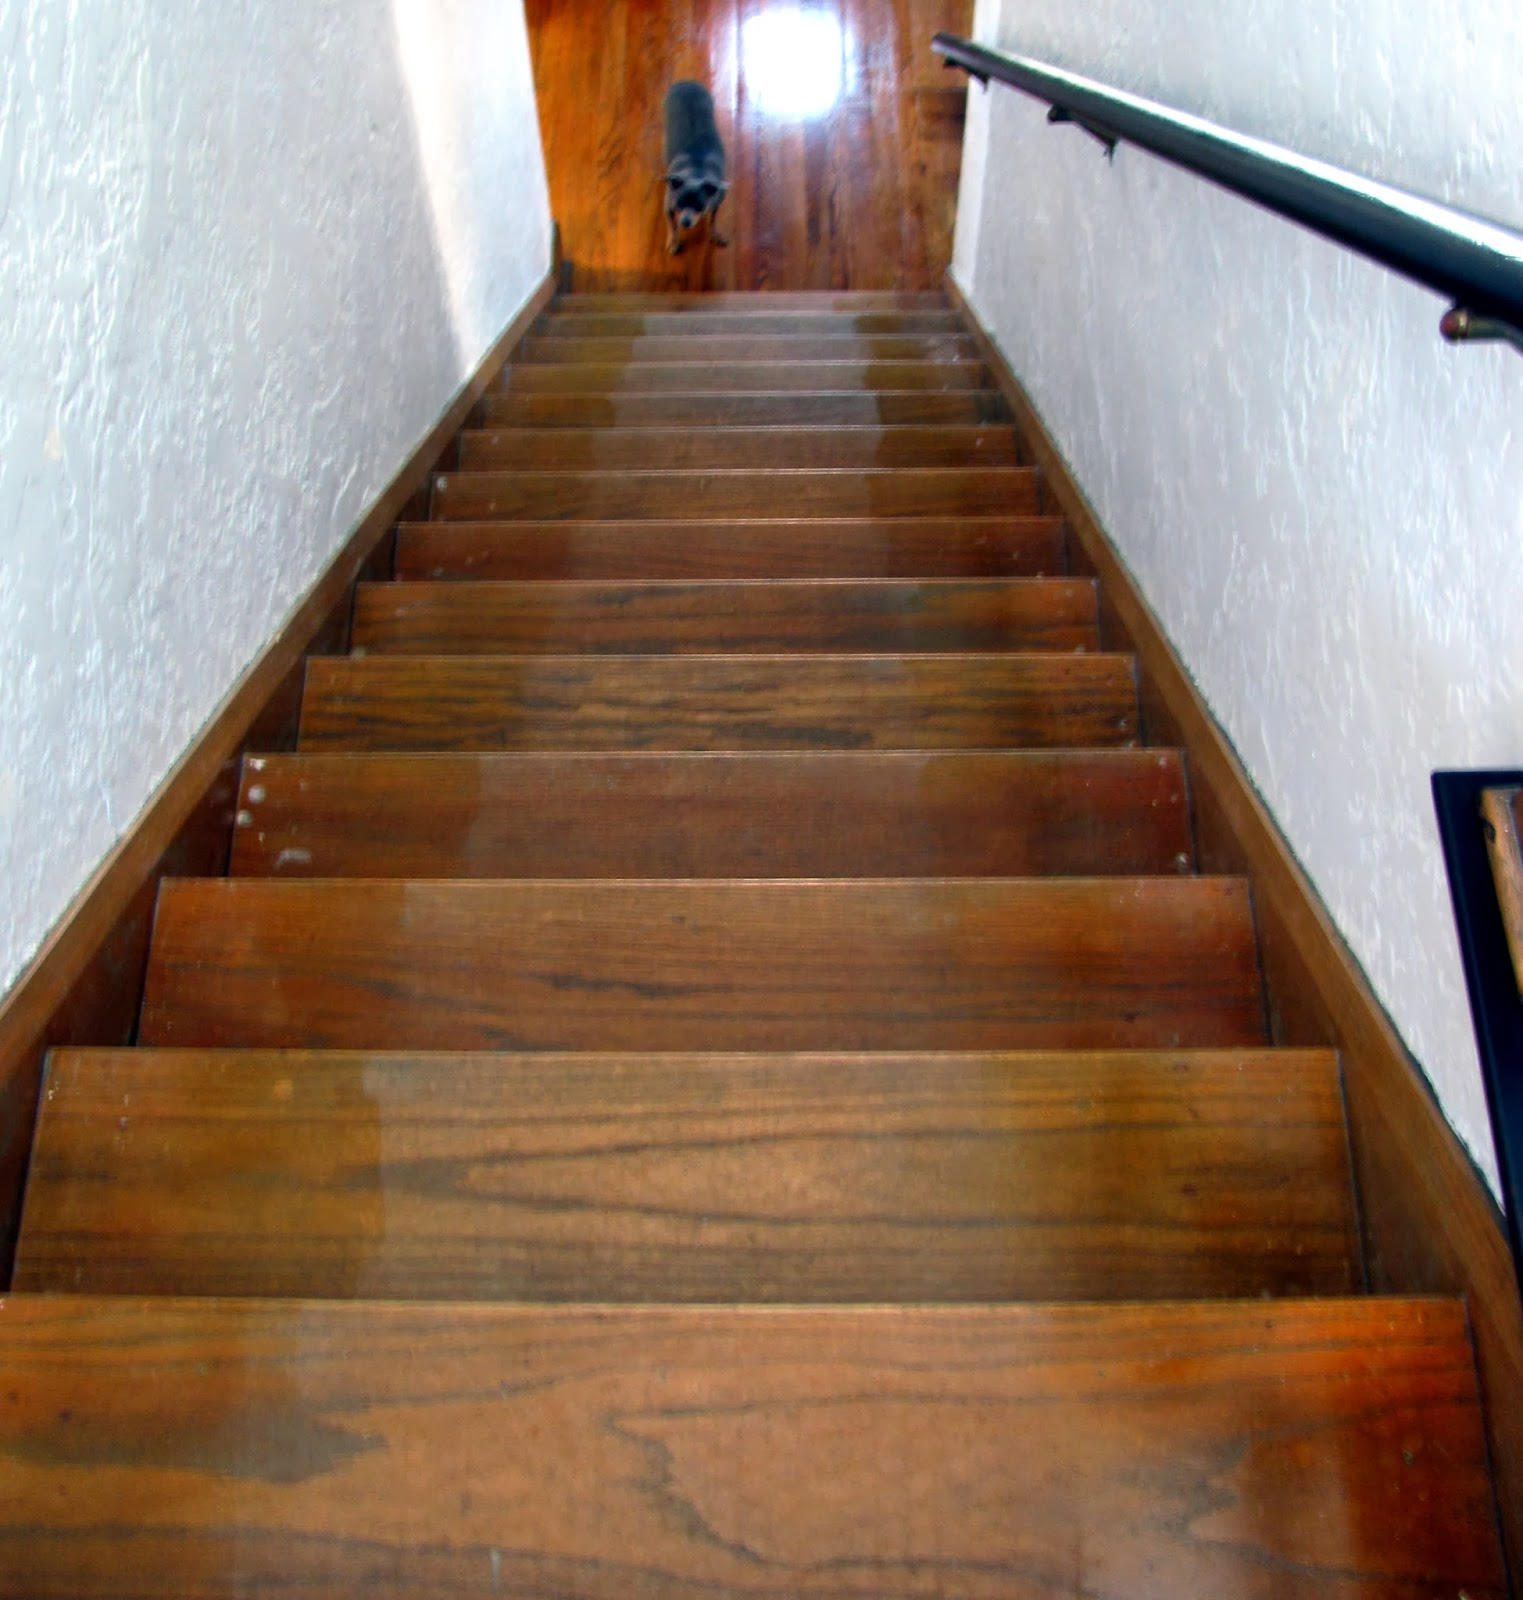 Brilliant dash and albert runner at home stairways combinet with laminate floor stairs